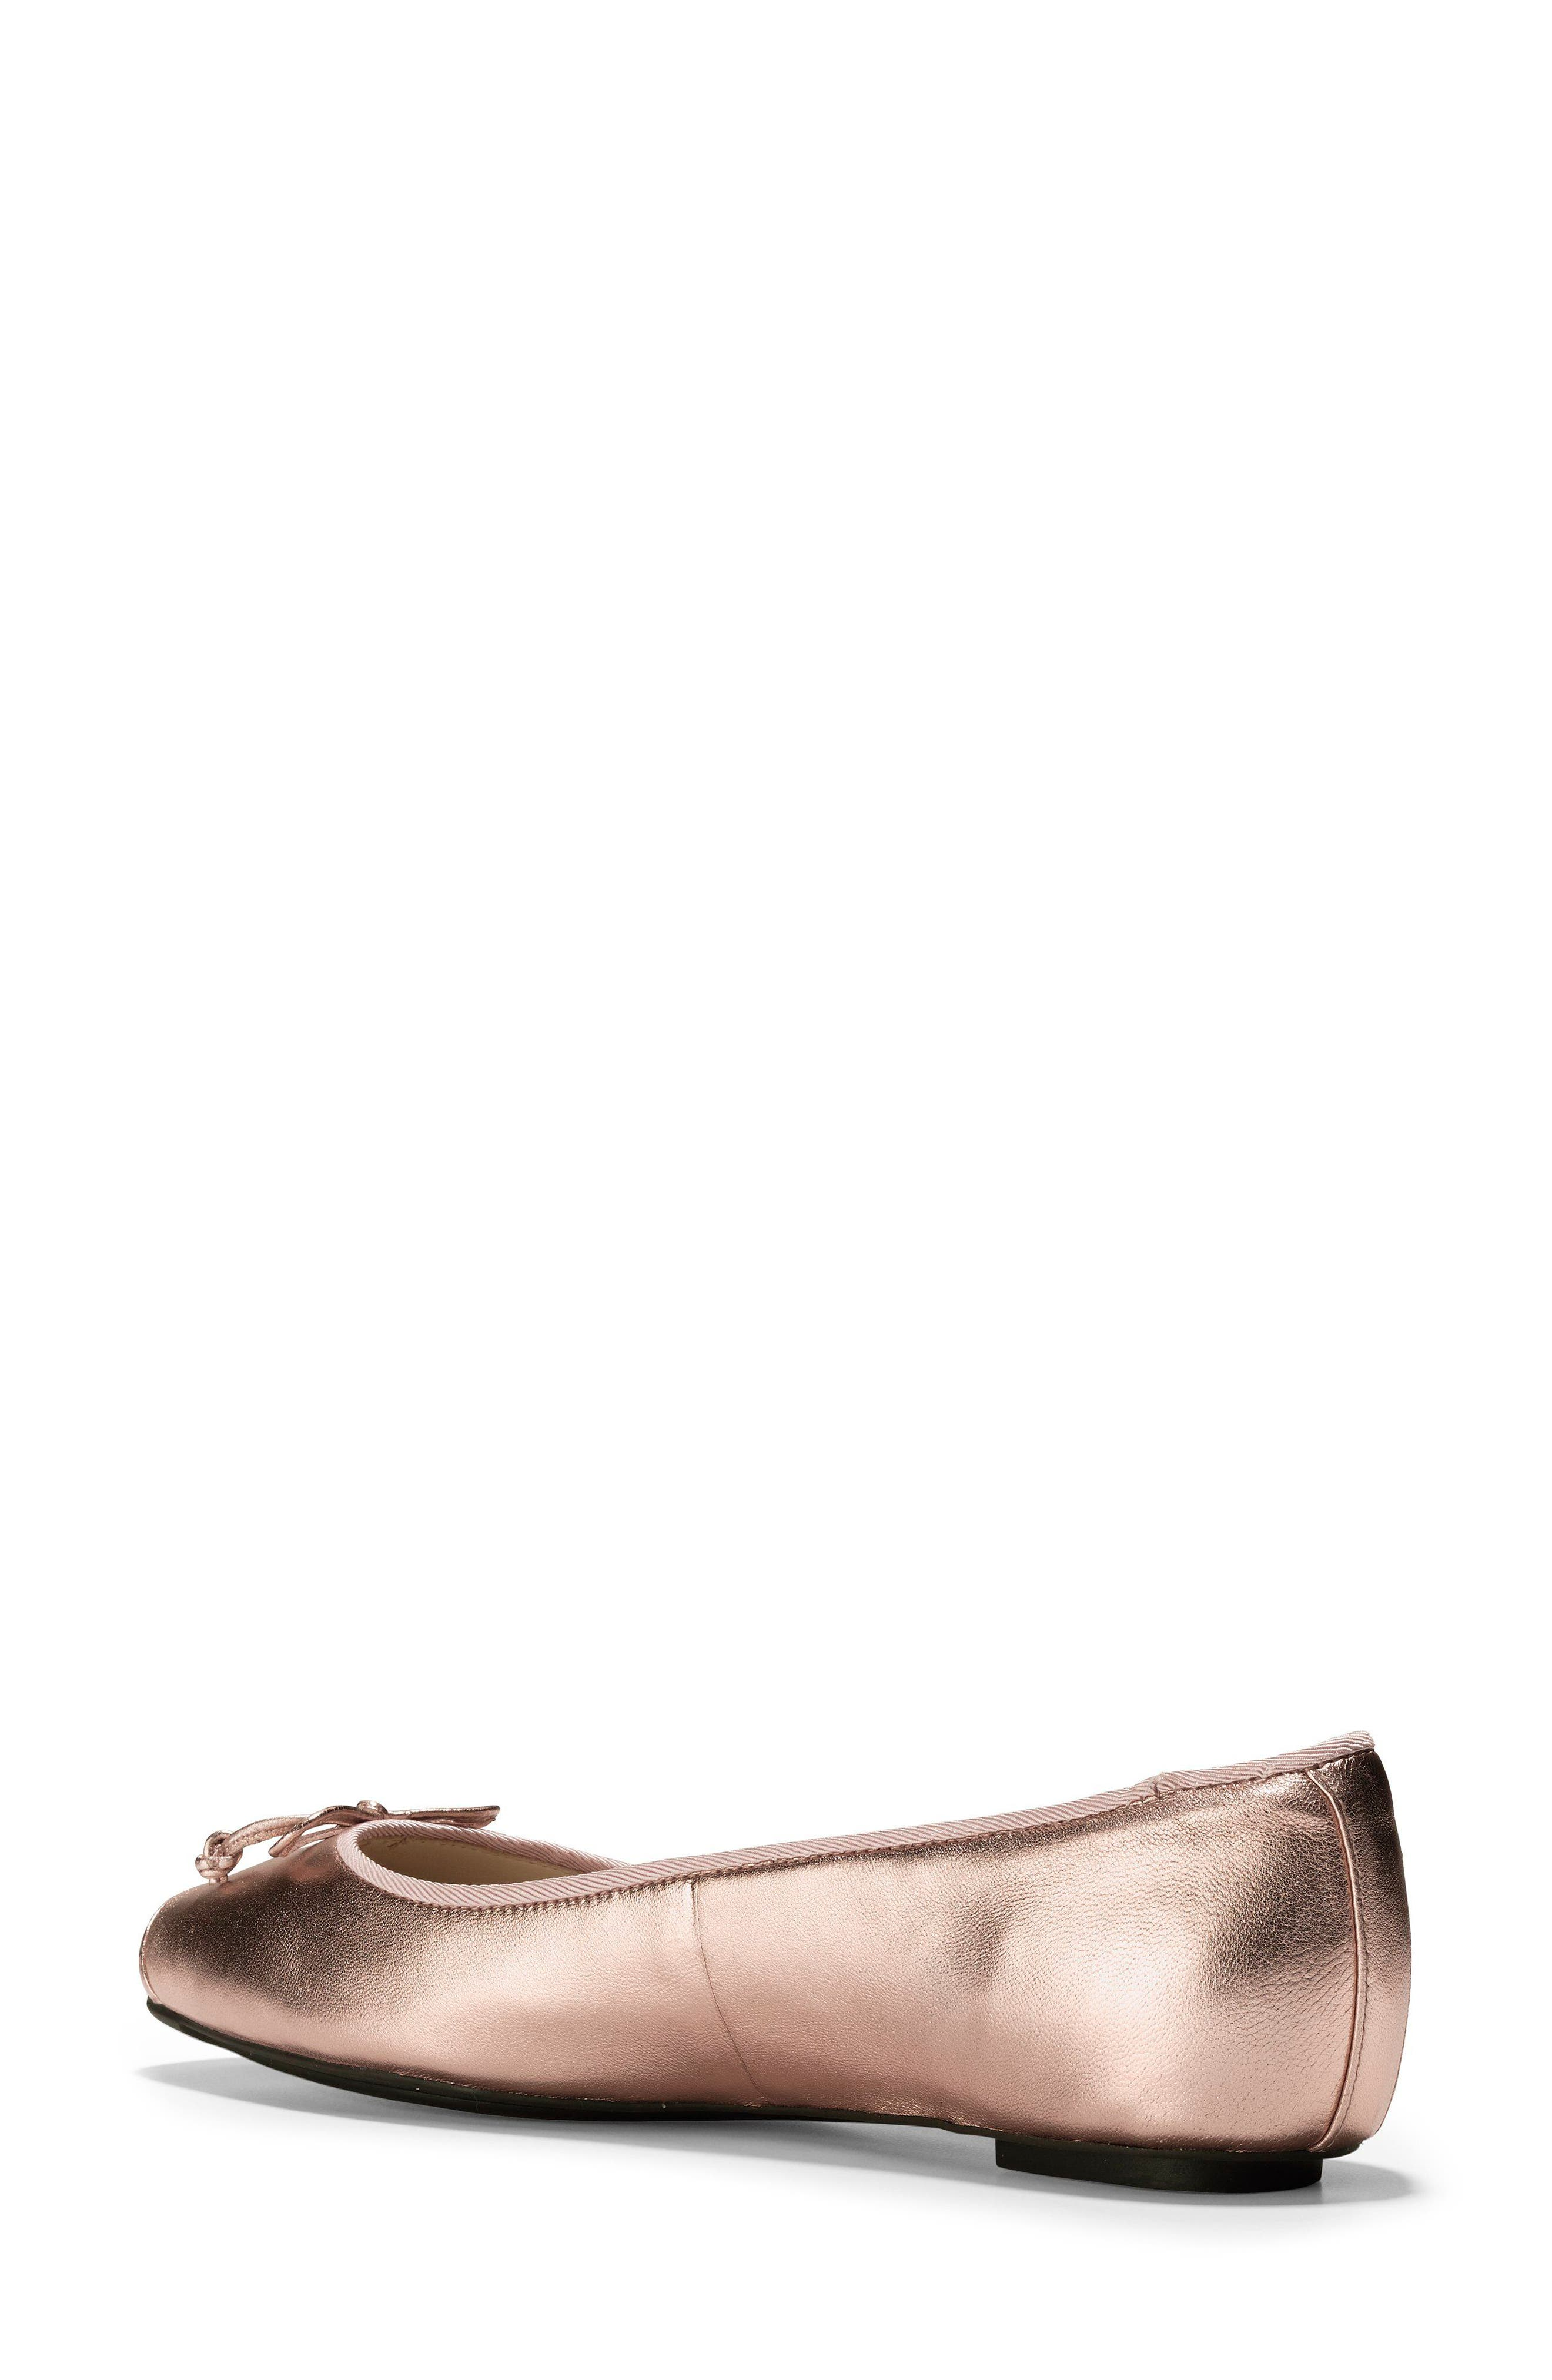 Downtown Ankle Wrap Ballet Flat,                             Alternate thumbnail 2, color,                             Rose Gold Leather